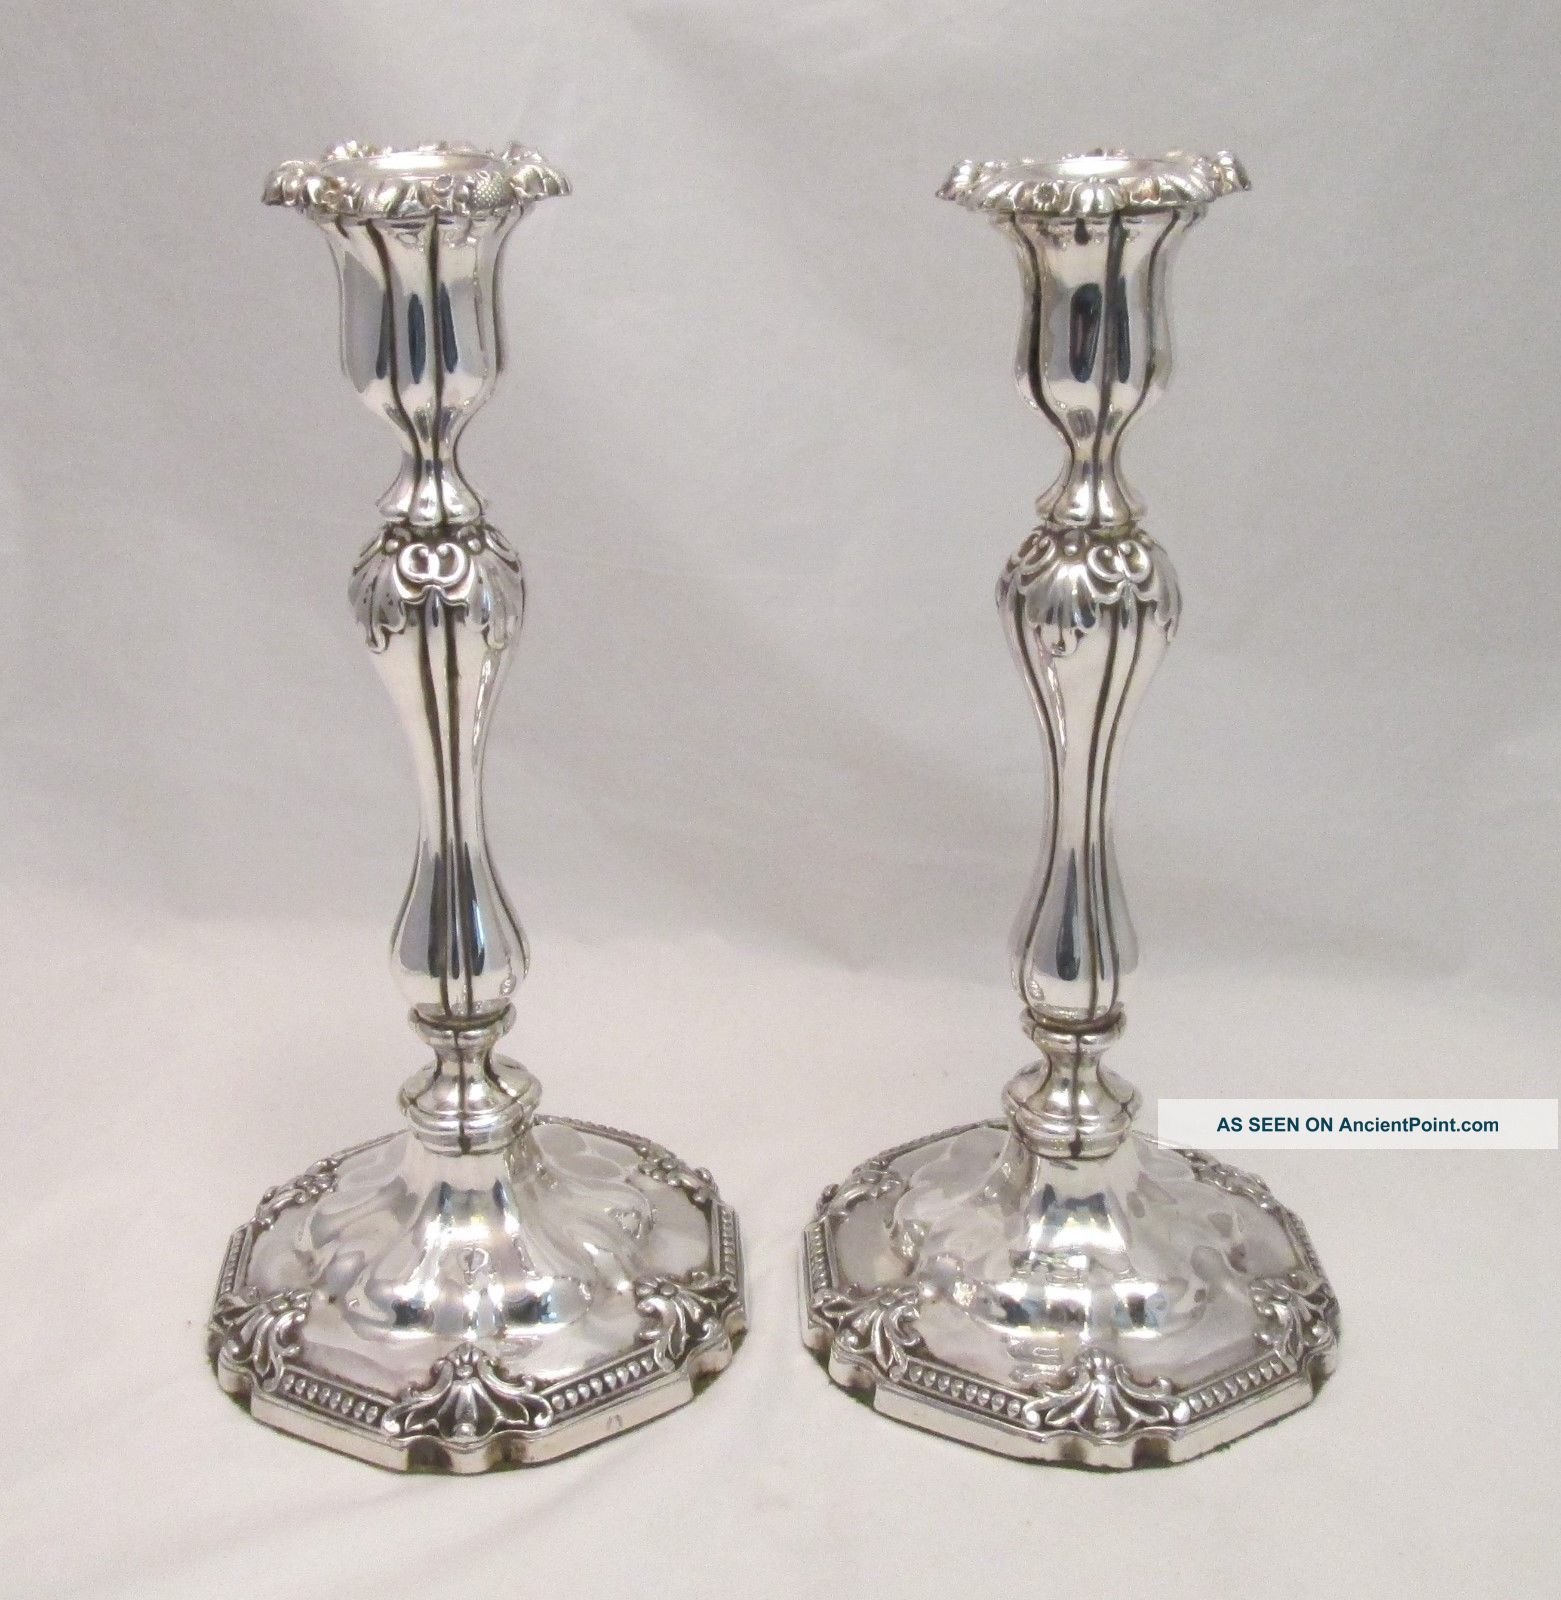 An Ornate Old Sheffield Plate Candlesticks By Roberts Smith & Co - C1830 Candlesticks & Candelabra photo